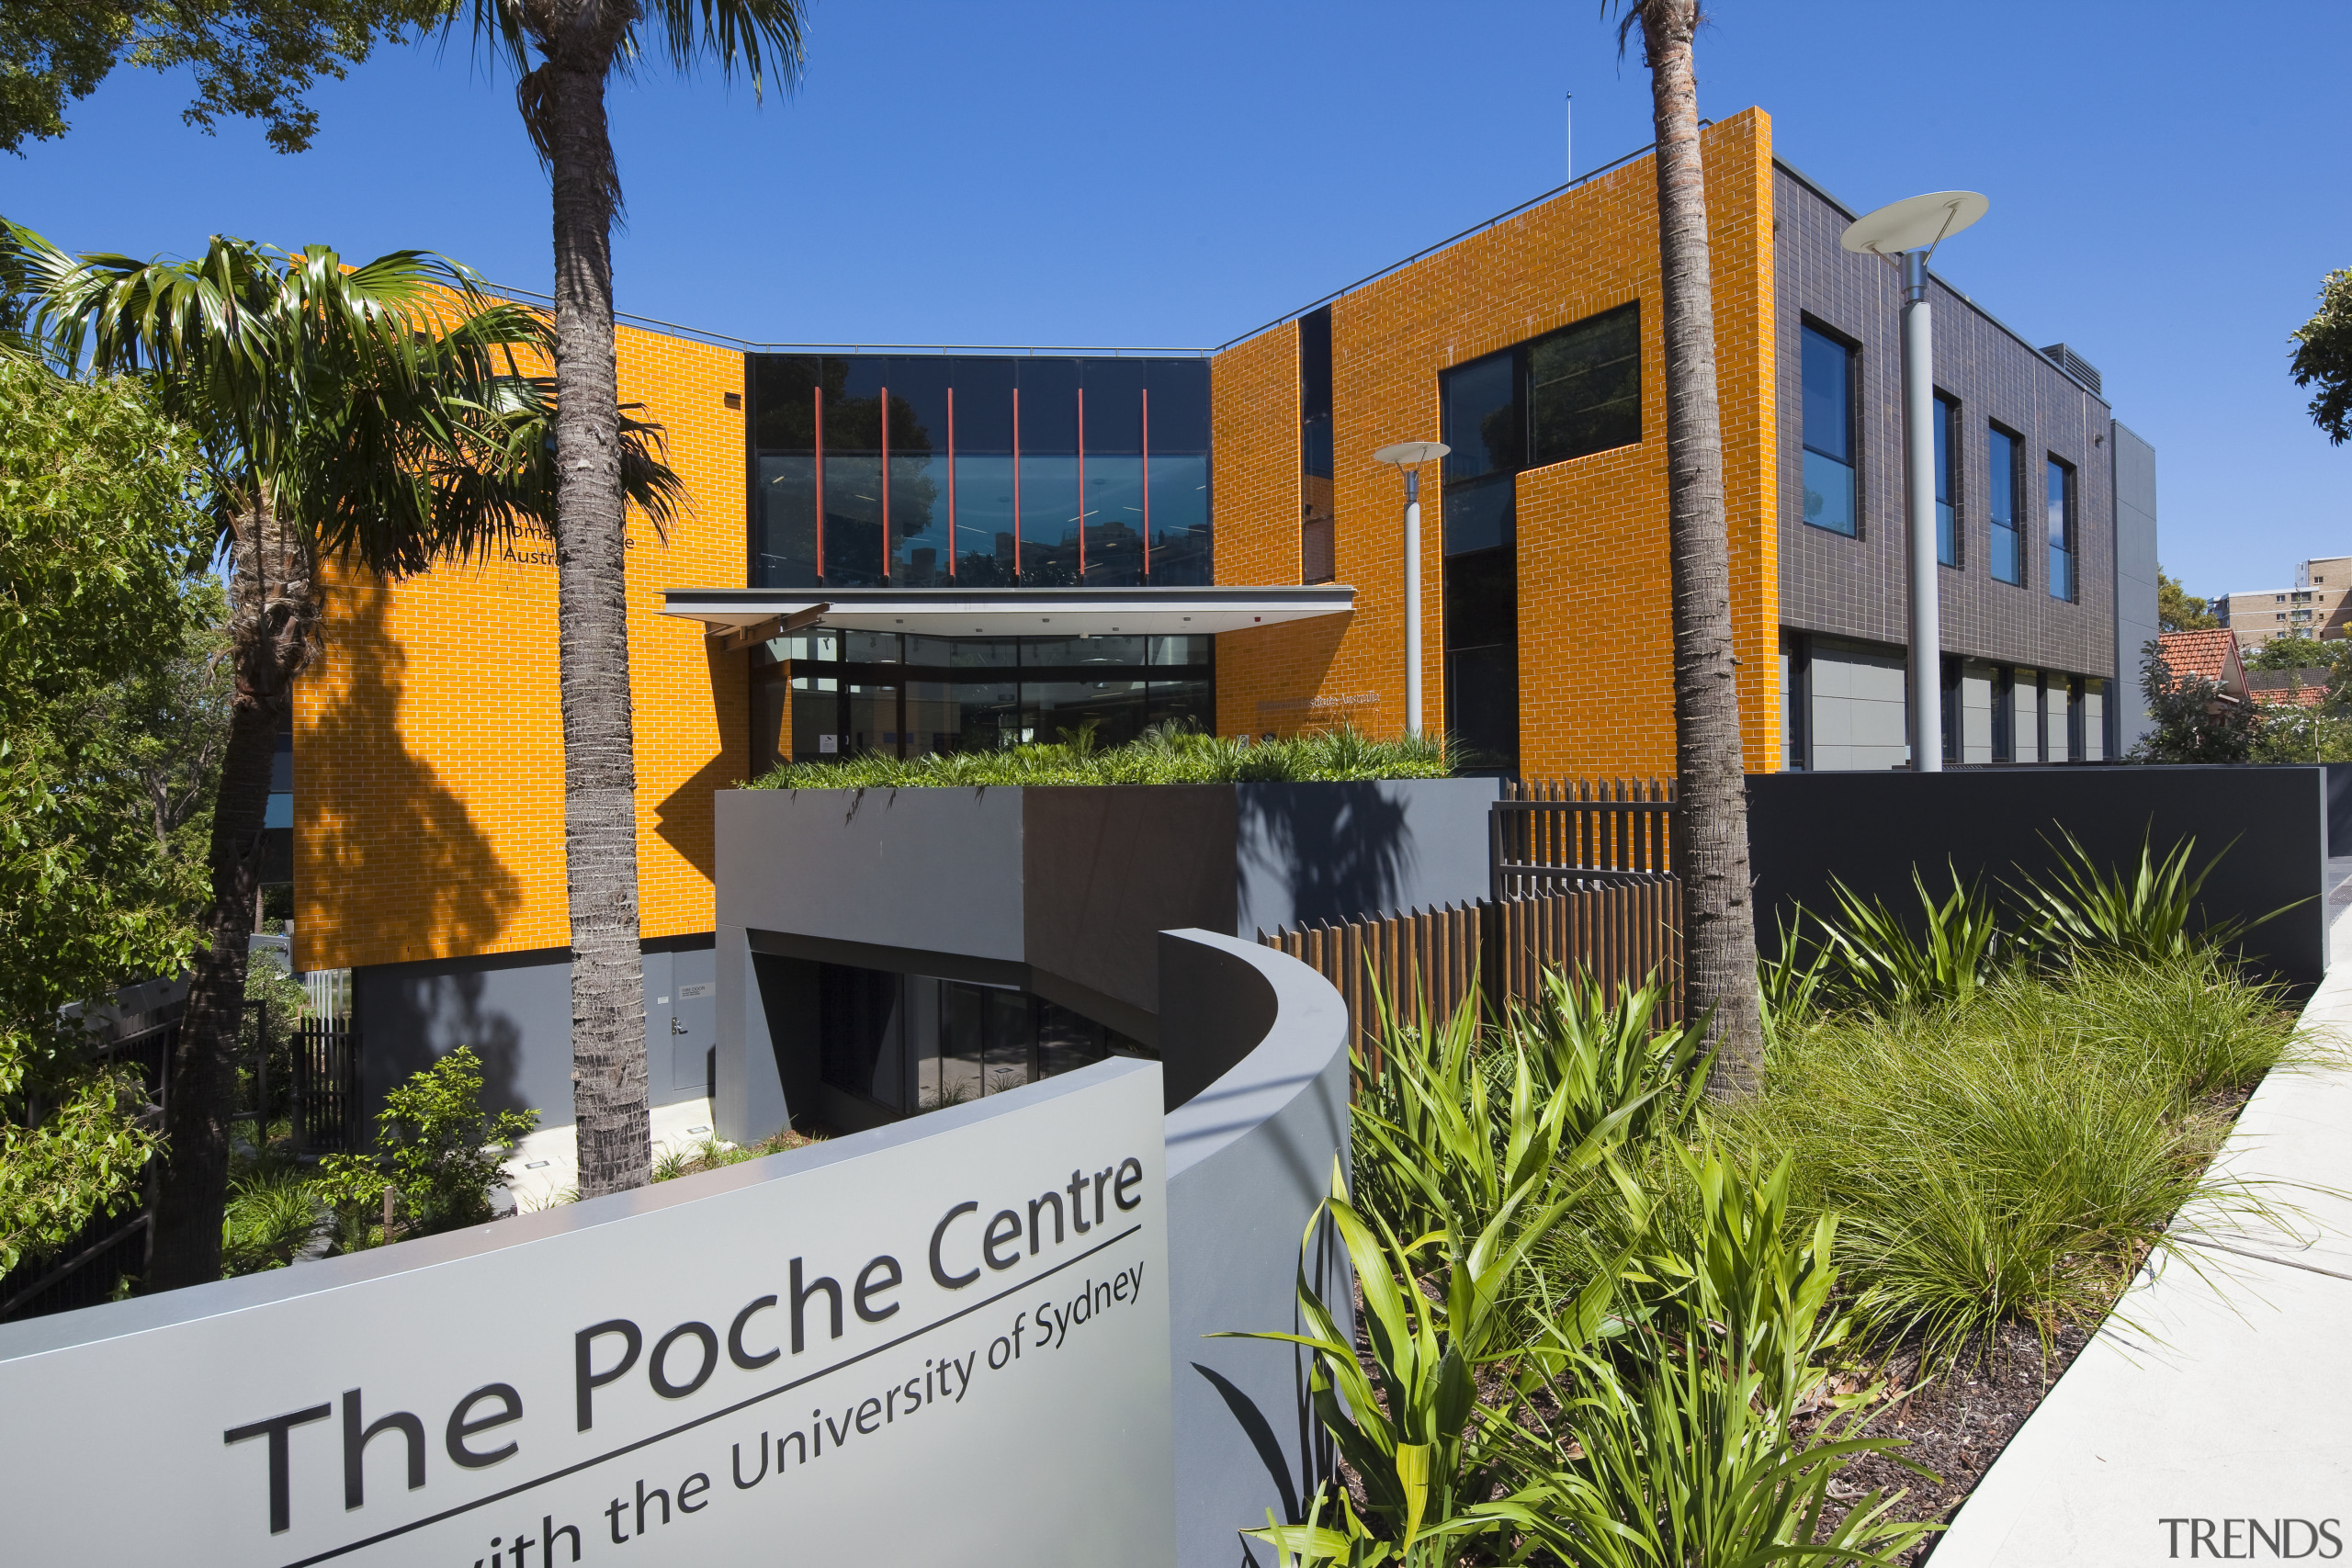 Exterior view of the Poche Centre which was architecture, building, elevation, facade, home, house, property, real estate, villa